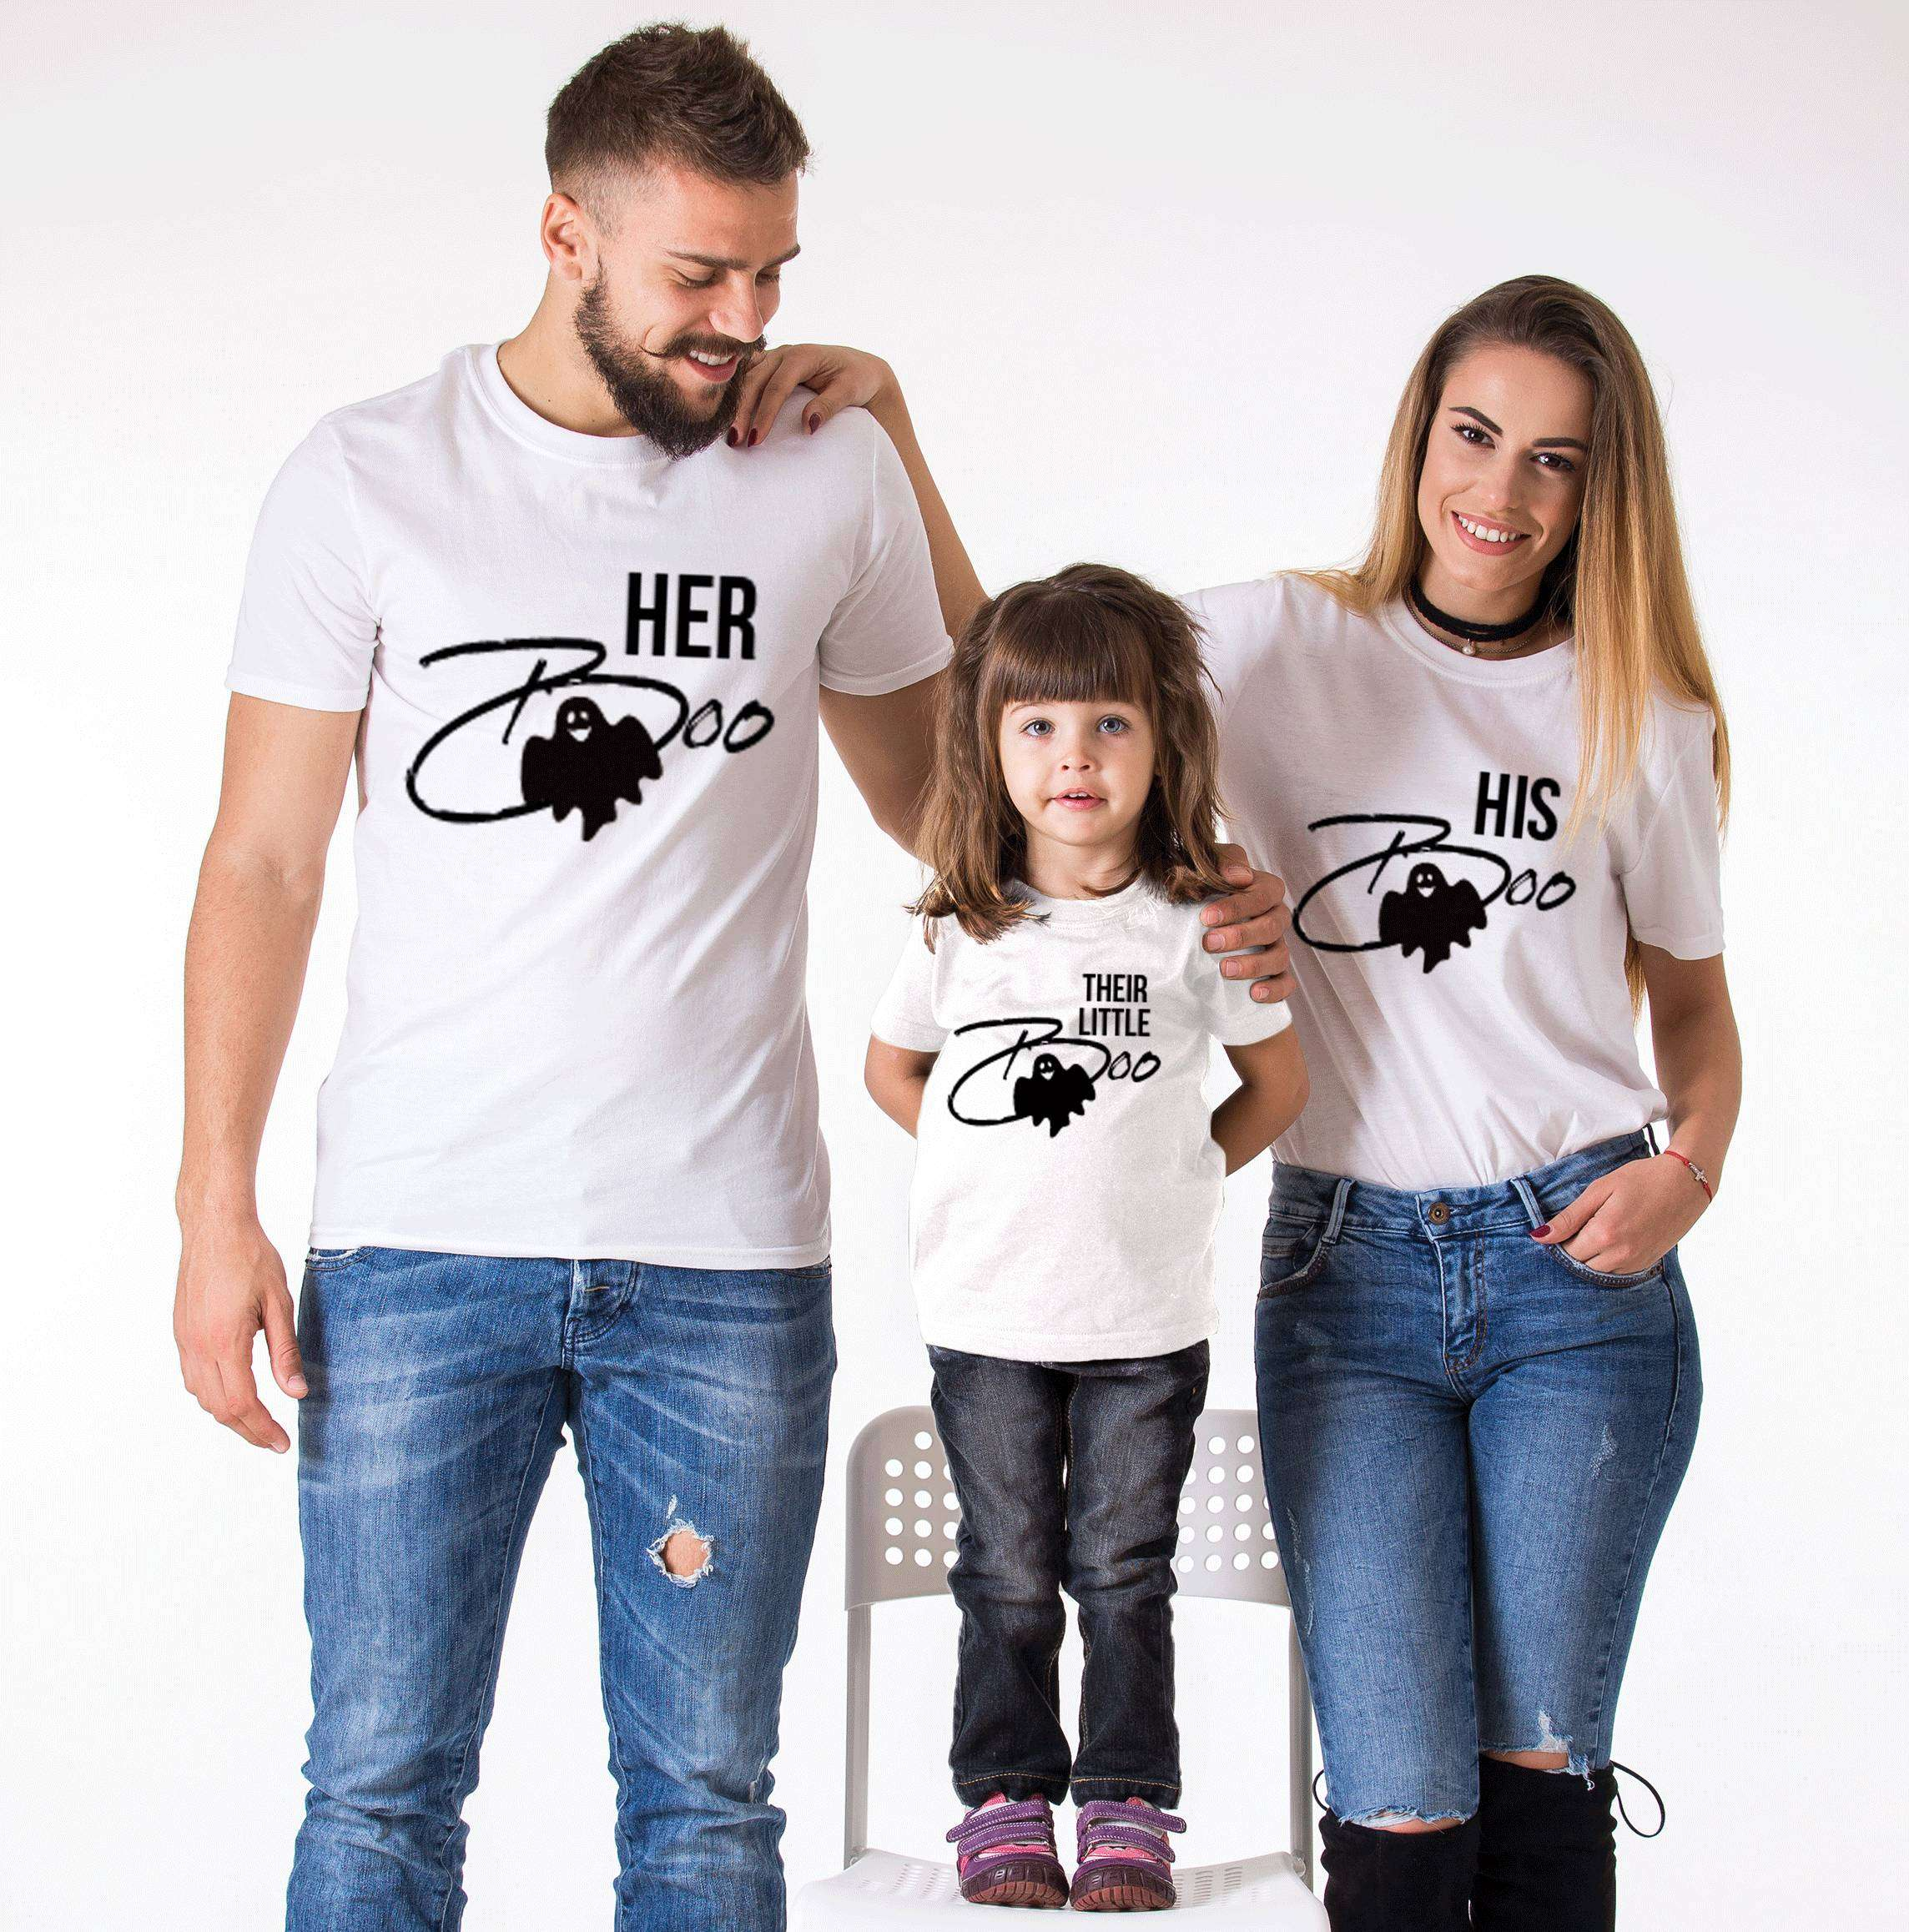 471a823b Her Boo His Boo Their Little Boo, Matching Family Shirts, Halloween Shirts